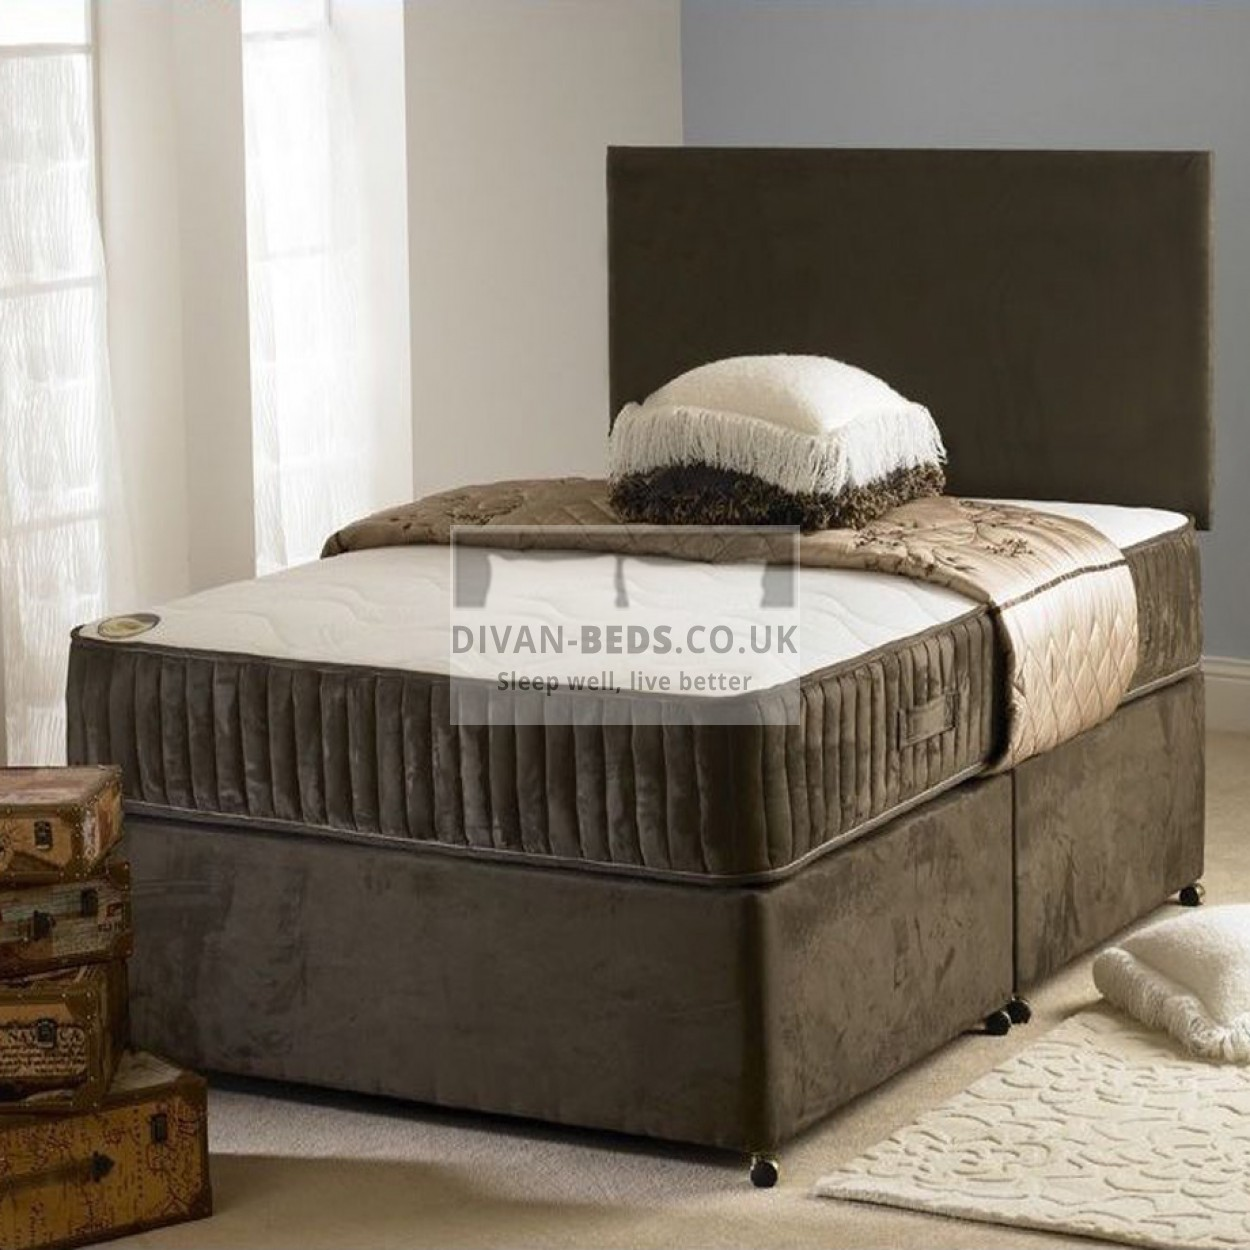 Carlo divan bed with spring memory foam mattress for Divan bed with memory foam mattress